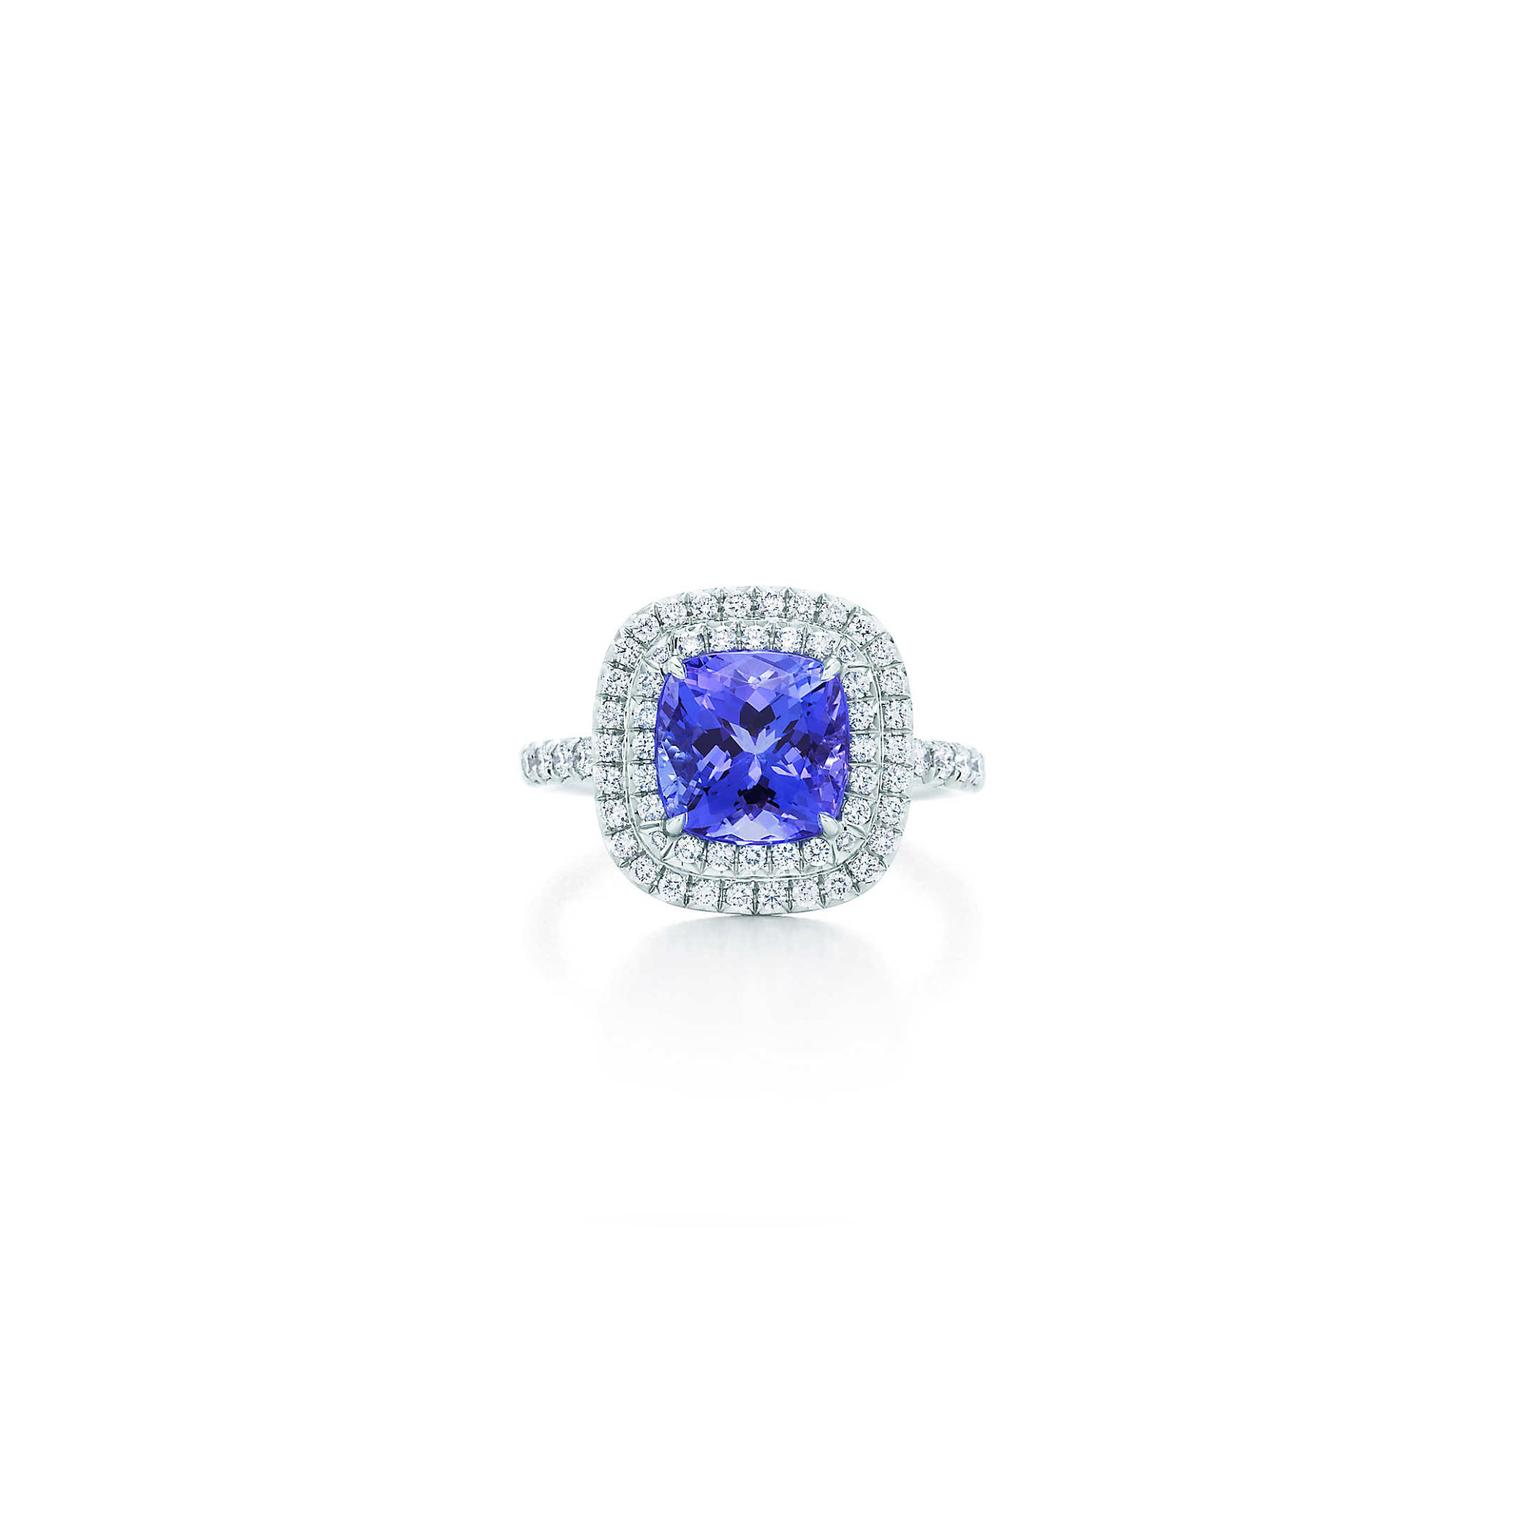 Soleste Cushion Cut Tanzanite Ring With Diamonds